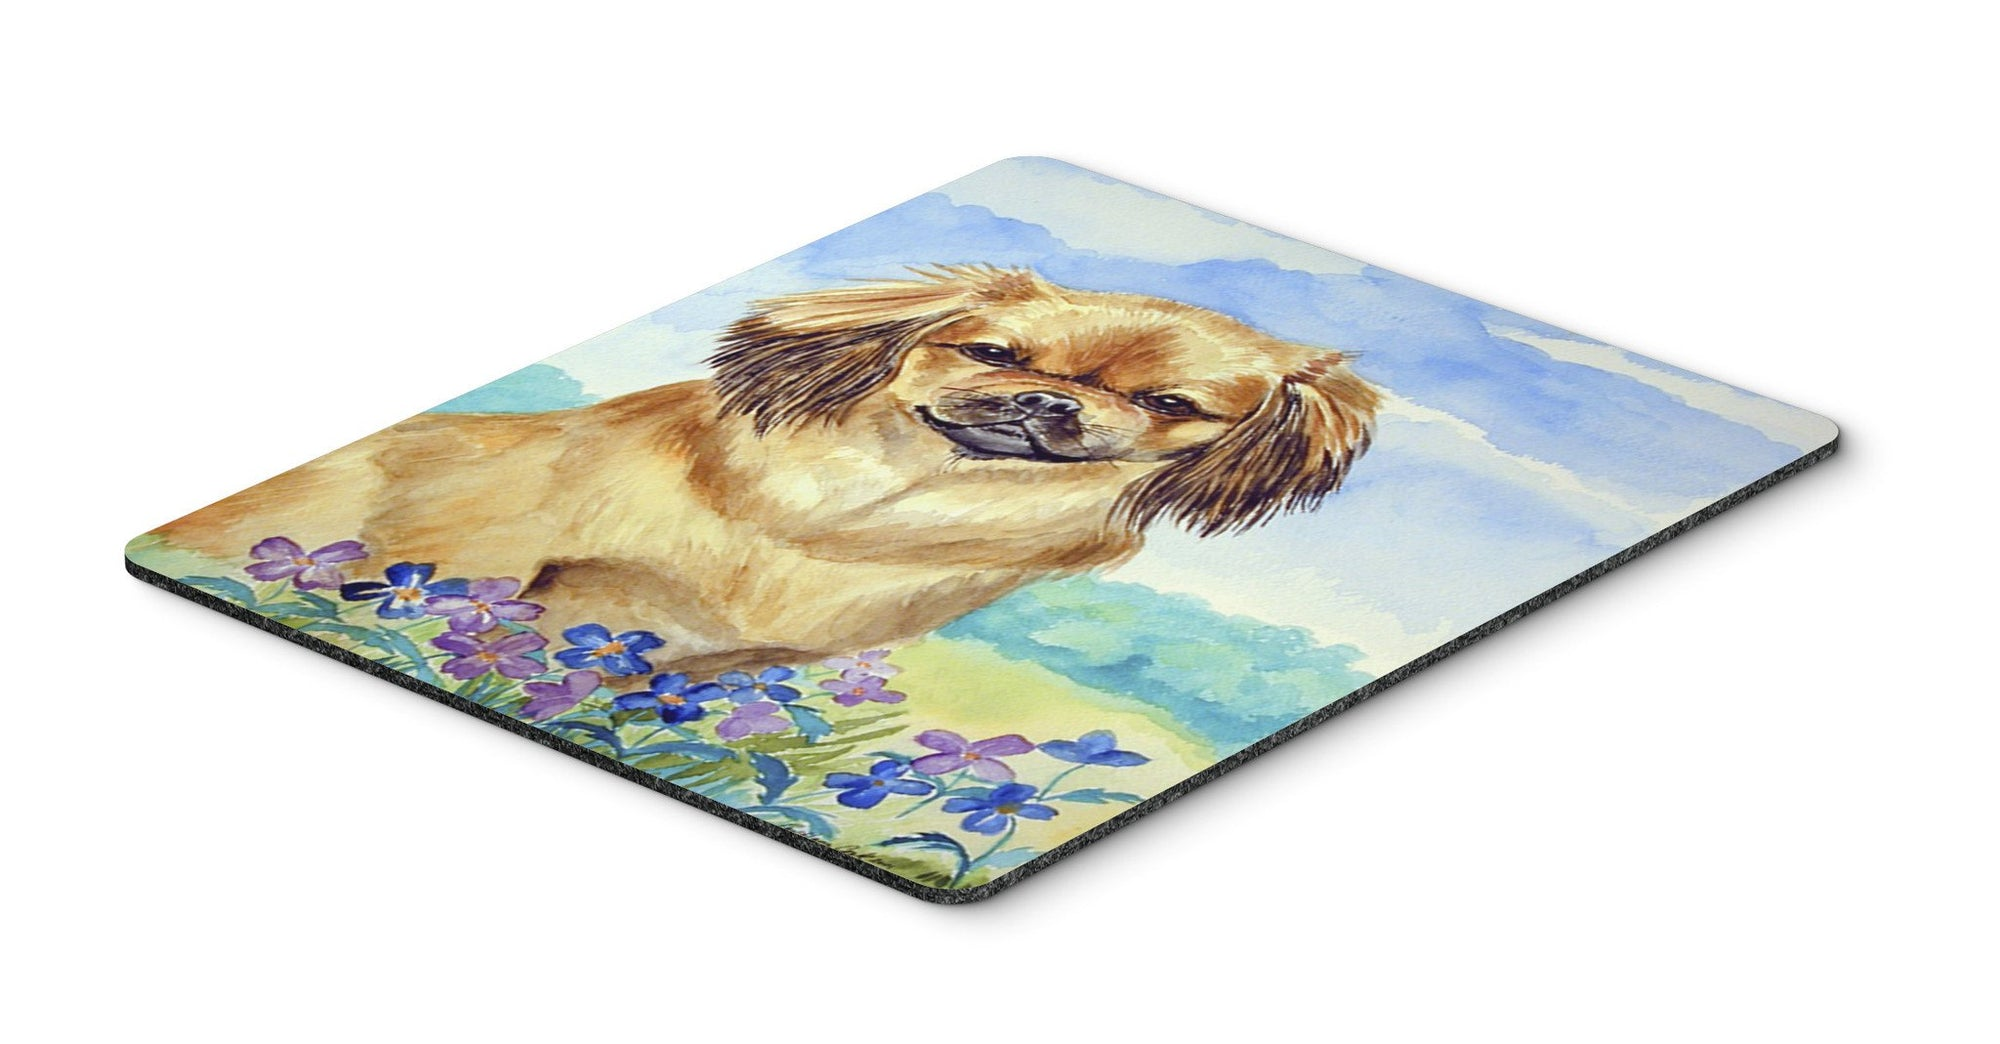 Tibetan Spaniel Mouse Pad, Hot Pad or Trivet by Caroline's Treasures